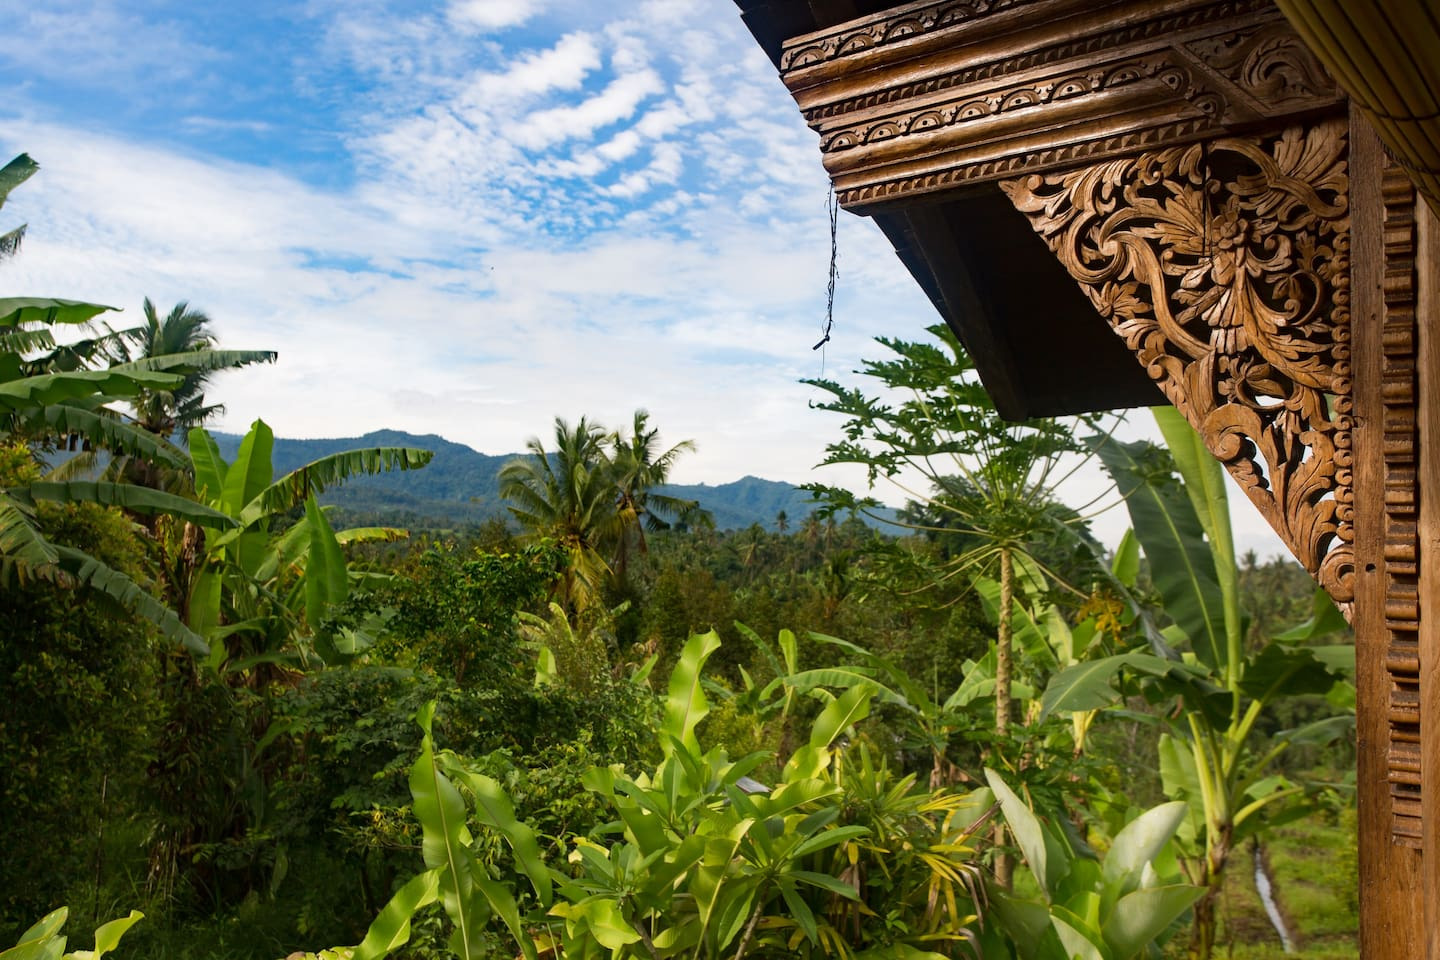 nestled in the mountains is this beautiful carved teak house